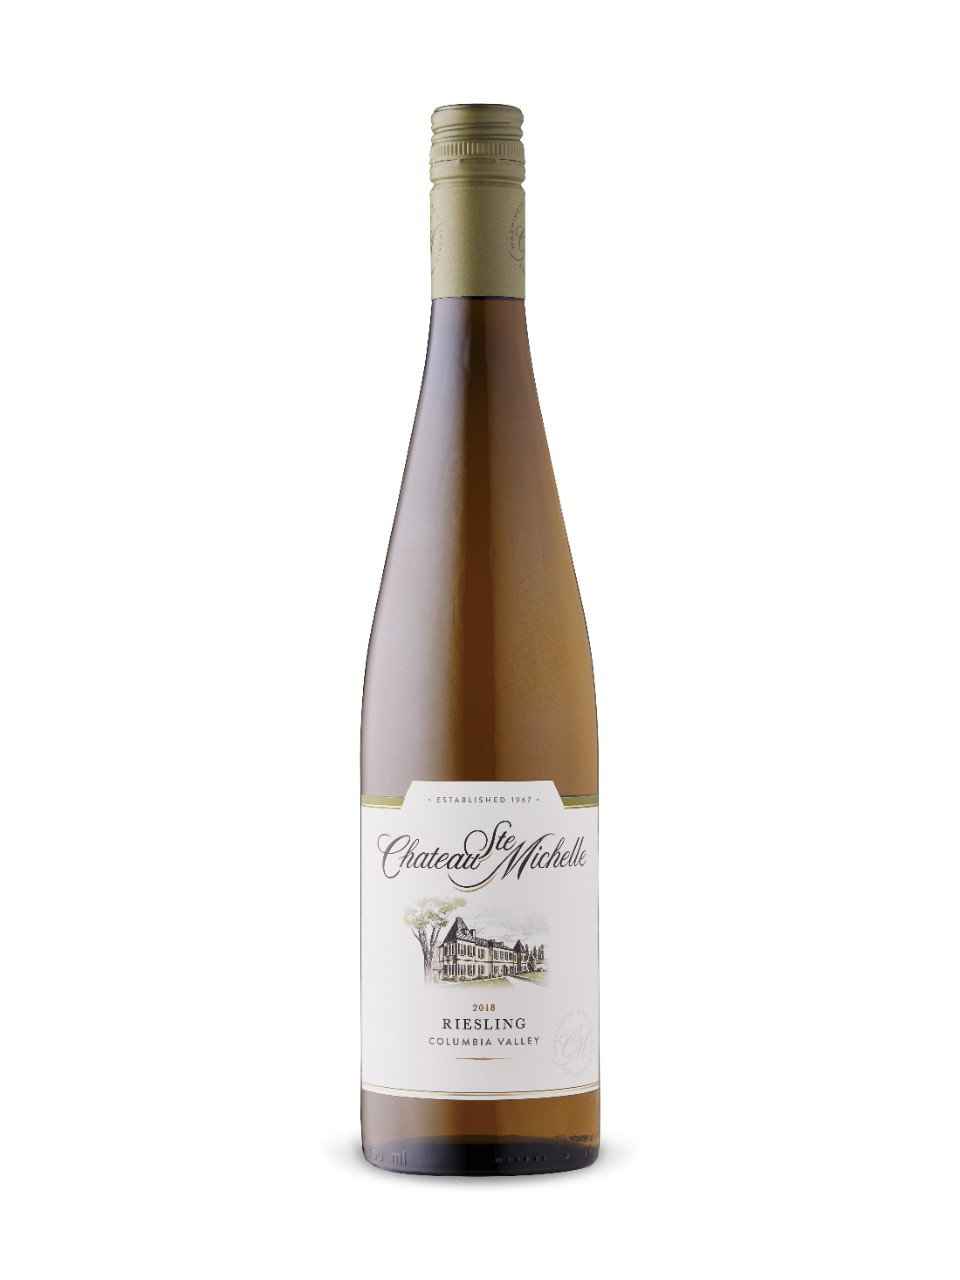 Riesling Chateau Ste. Michelle 2016